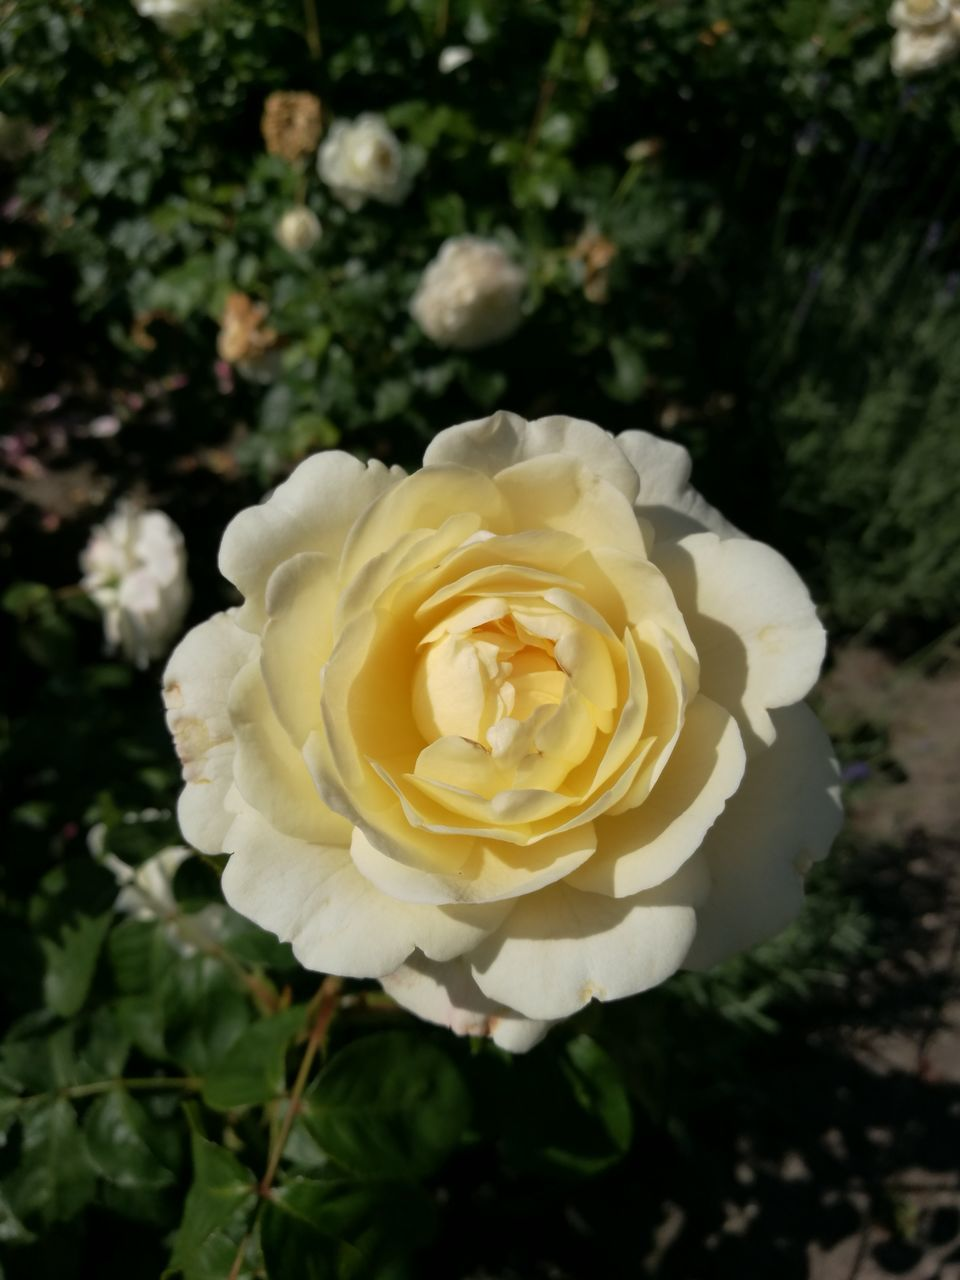 flower, petal, rose - flower, fragility, nature, flower head, beauty in nature, freshness, white color, no people, plant, growth, close-up, blooming, outdoors, day, yellow